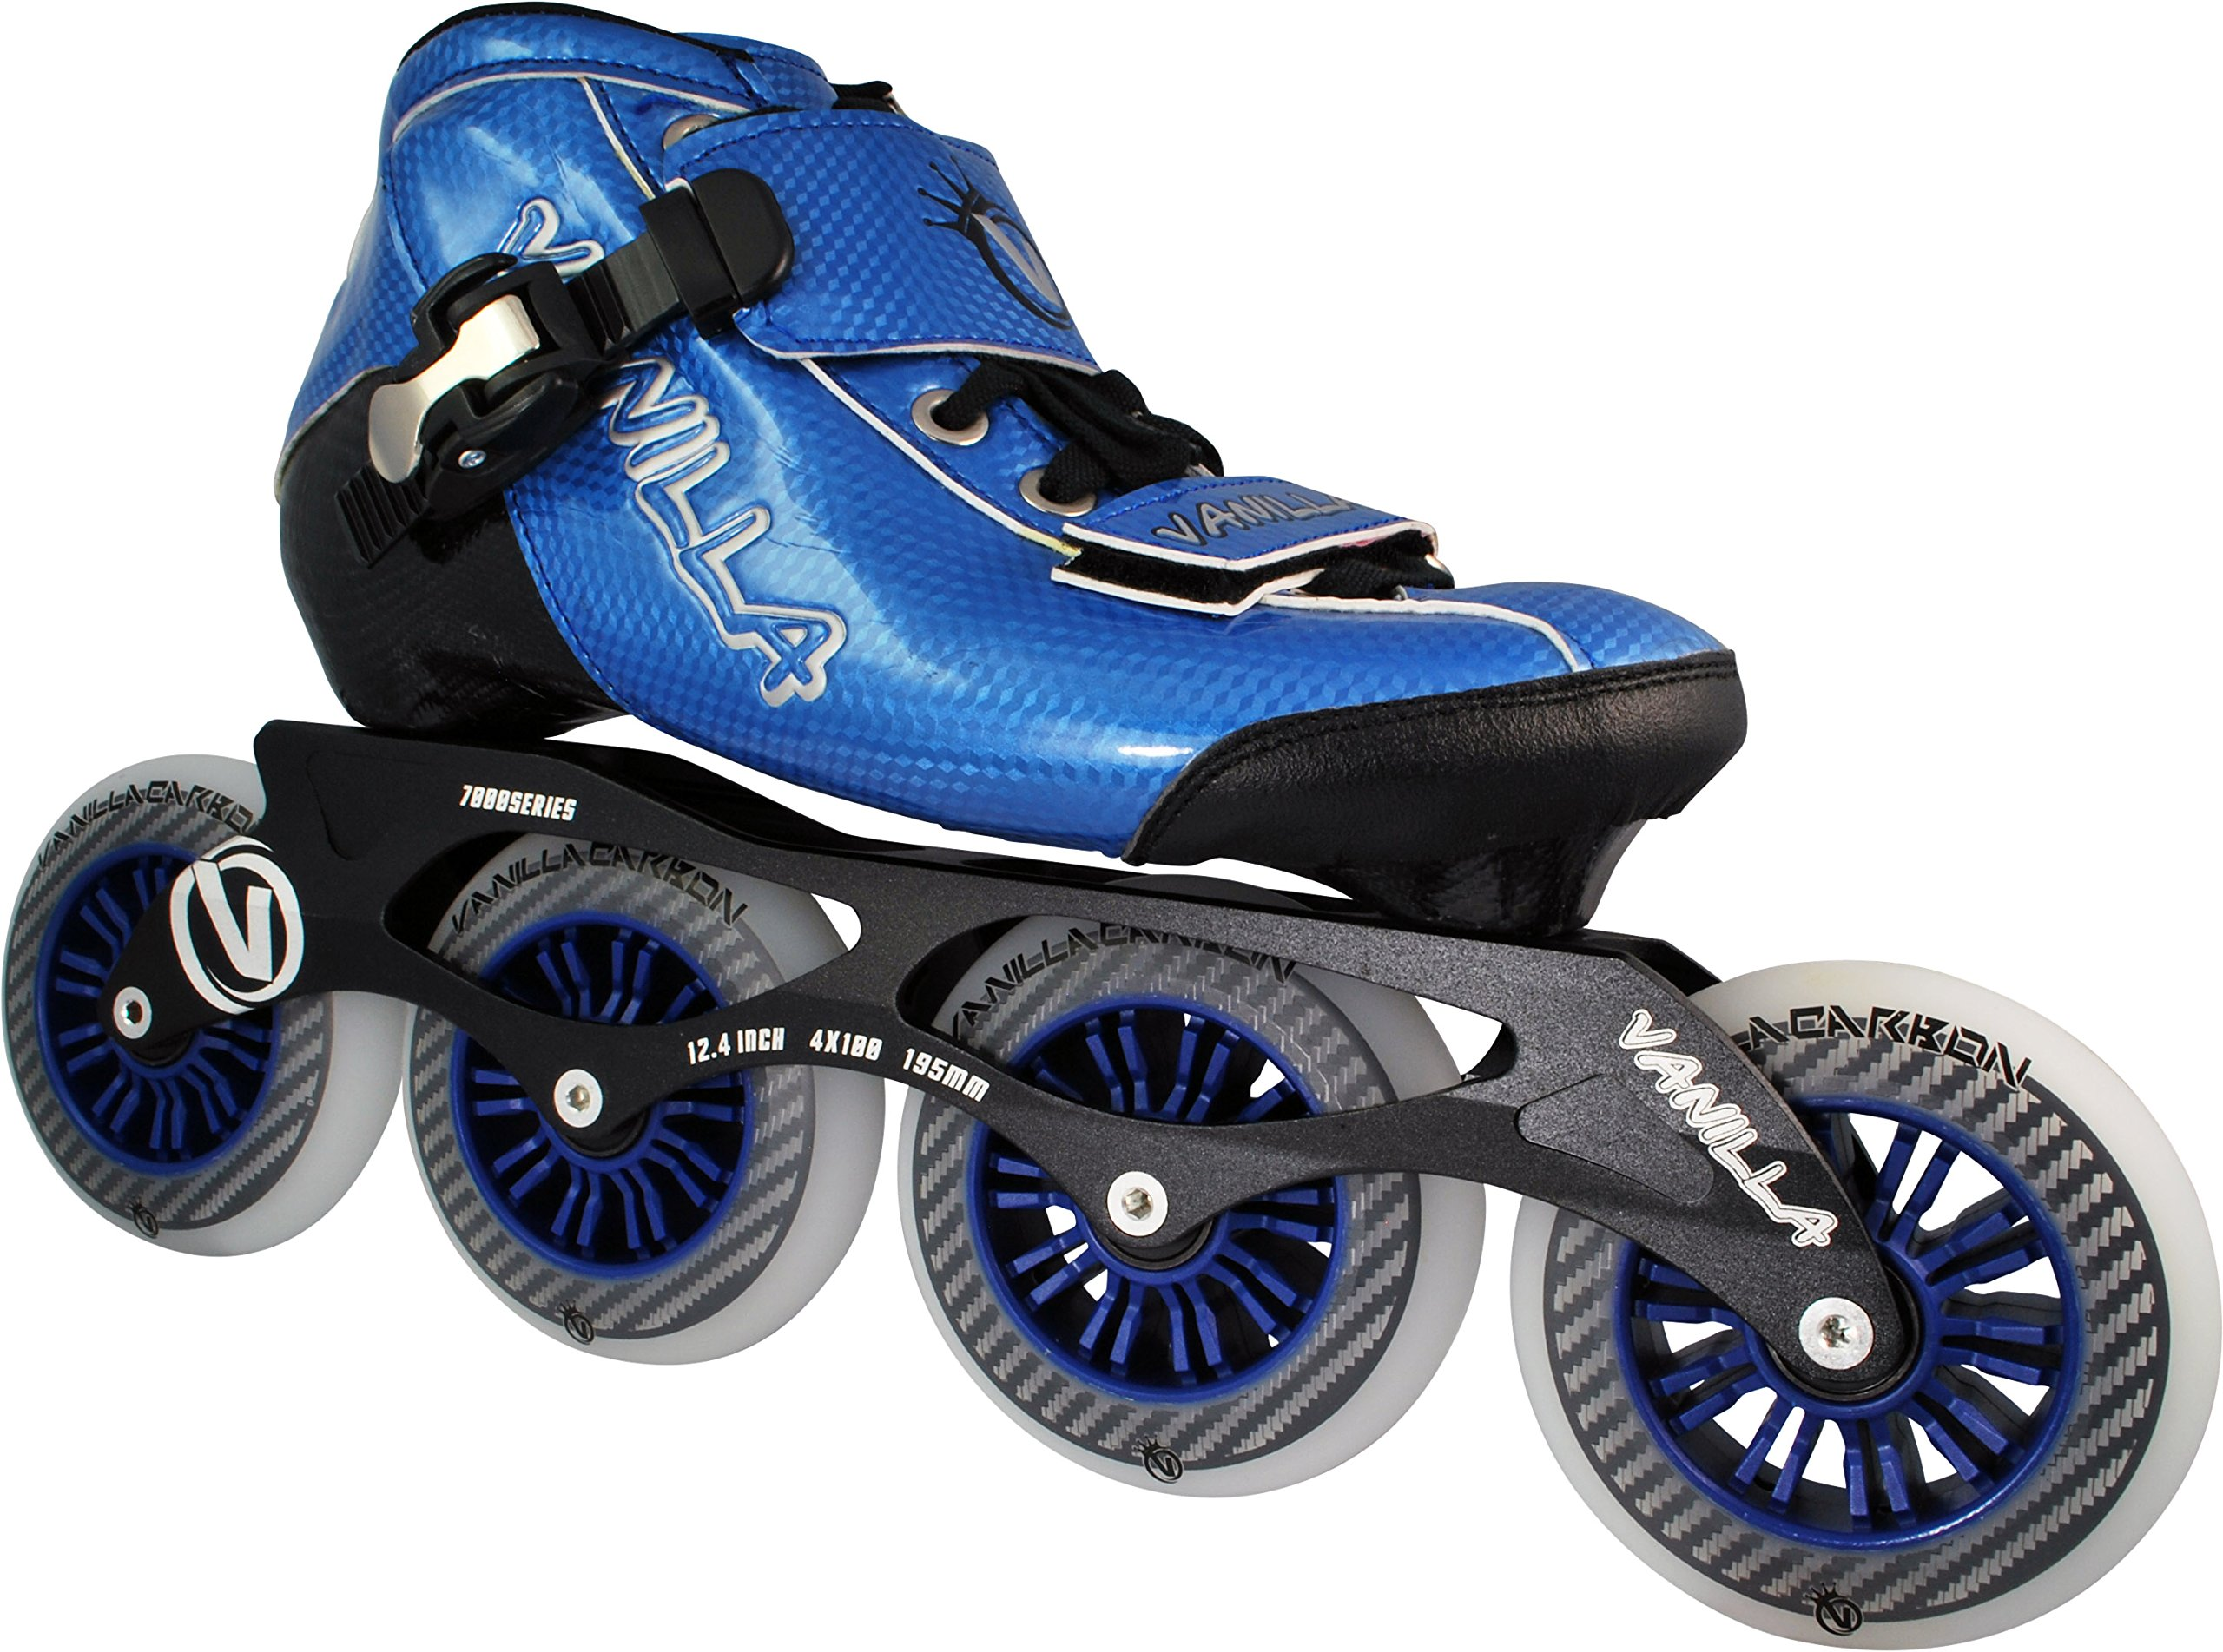 VNLA Carbon Speed Inline Skates by VNLA (Image #1)